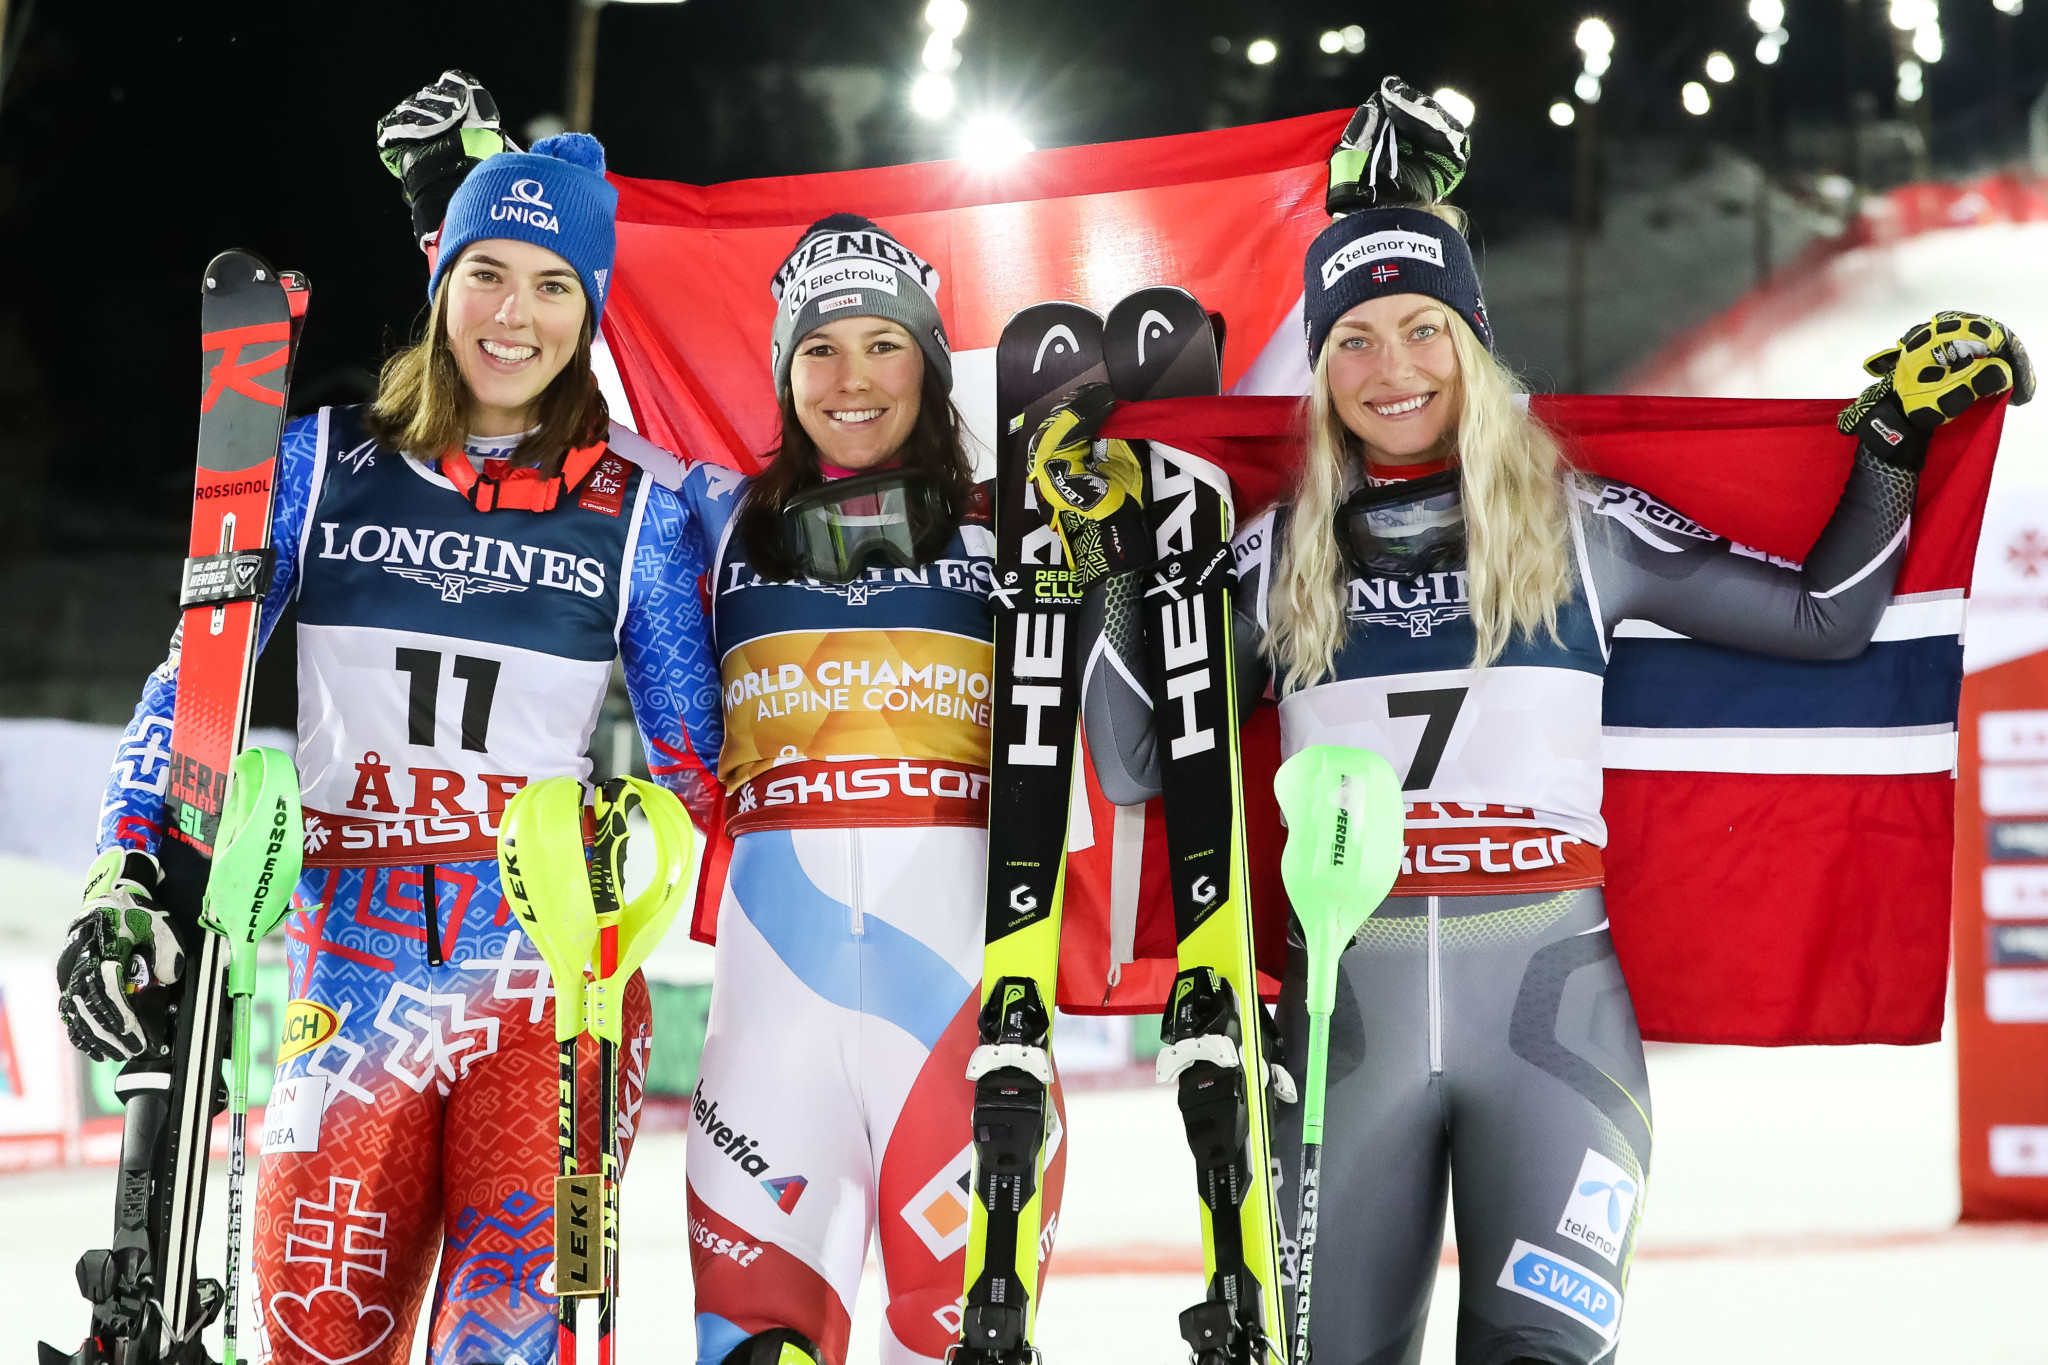 Wendy Holdener triumphed in the women's Alpine combined event ©Getty Images